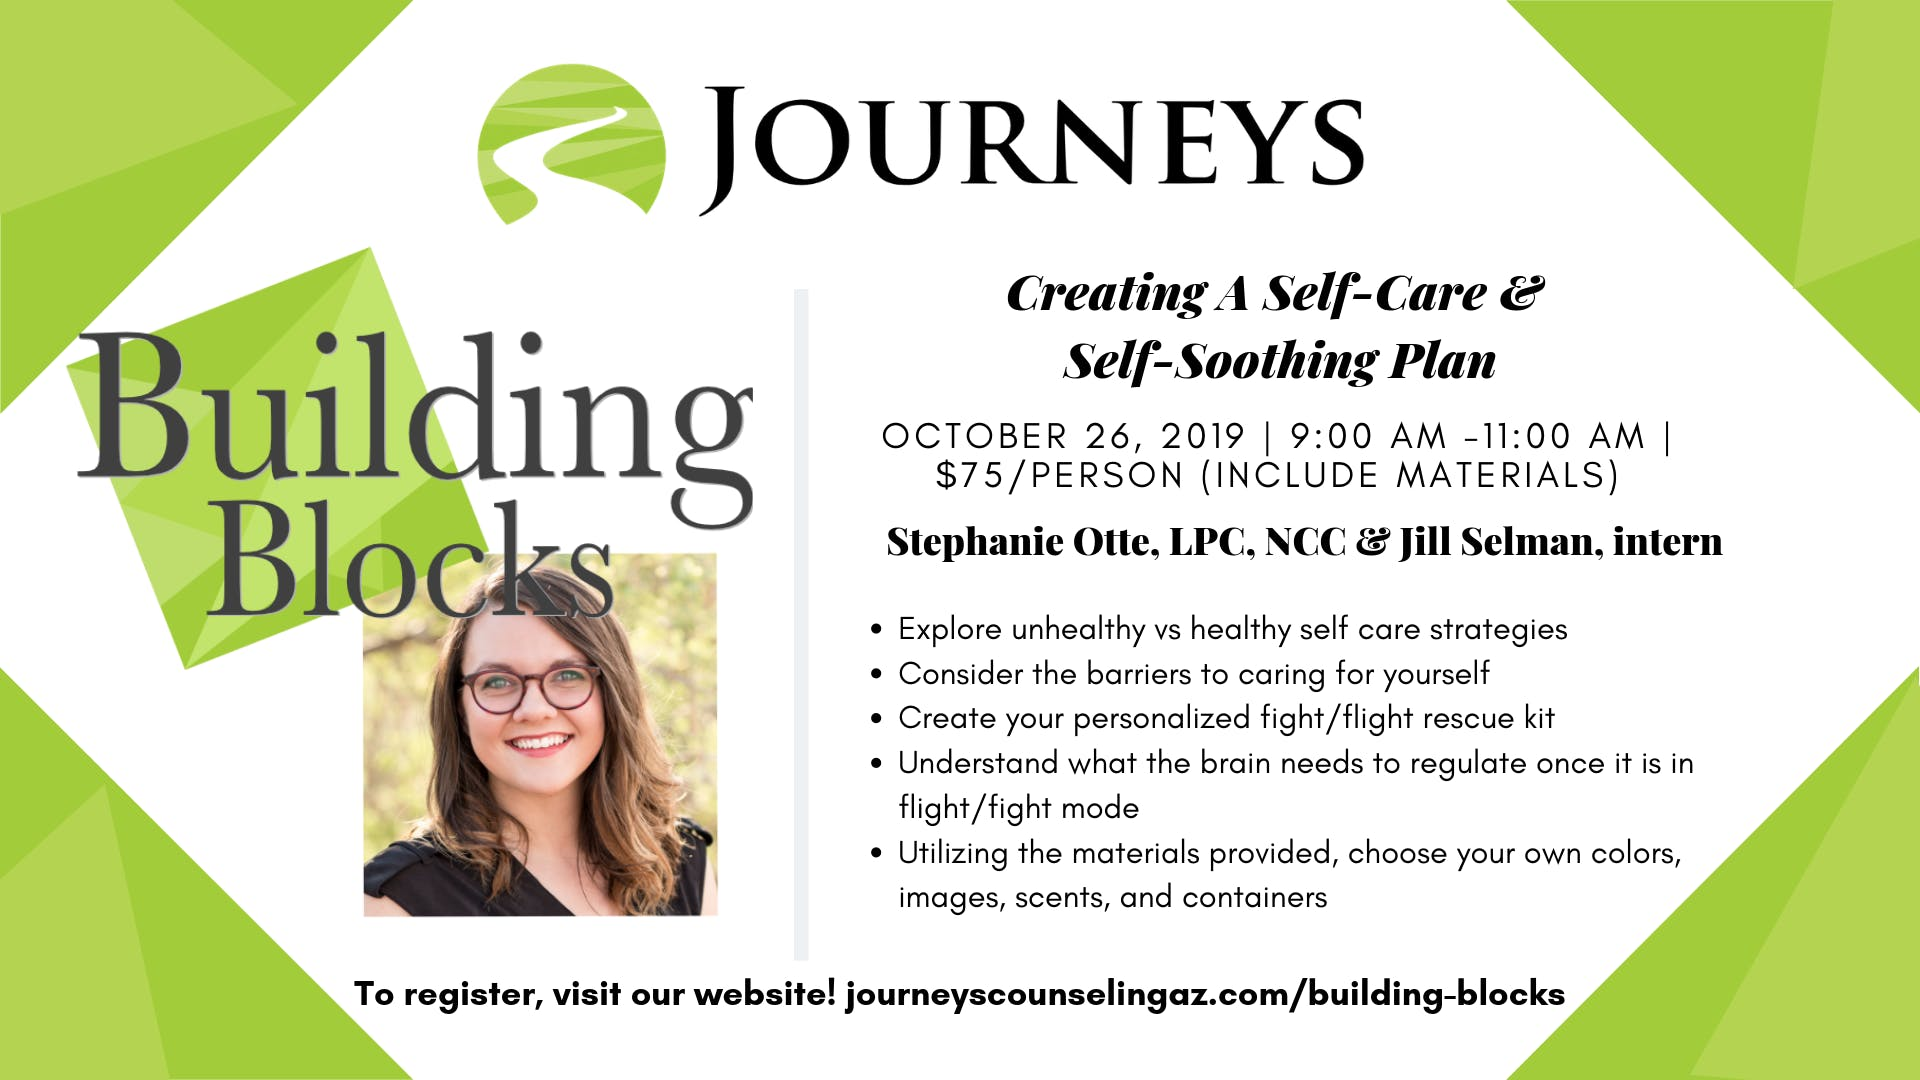 Creating A Self-Care & Self-Soothing Plan